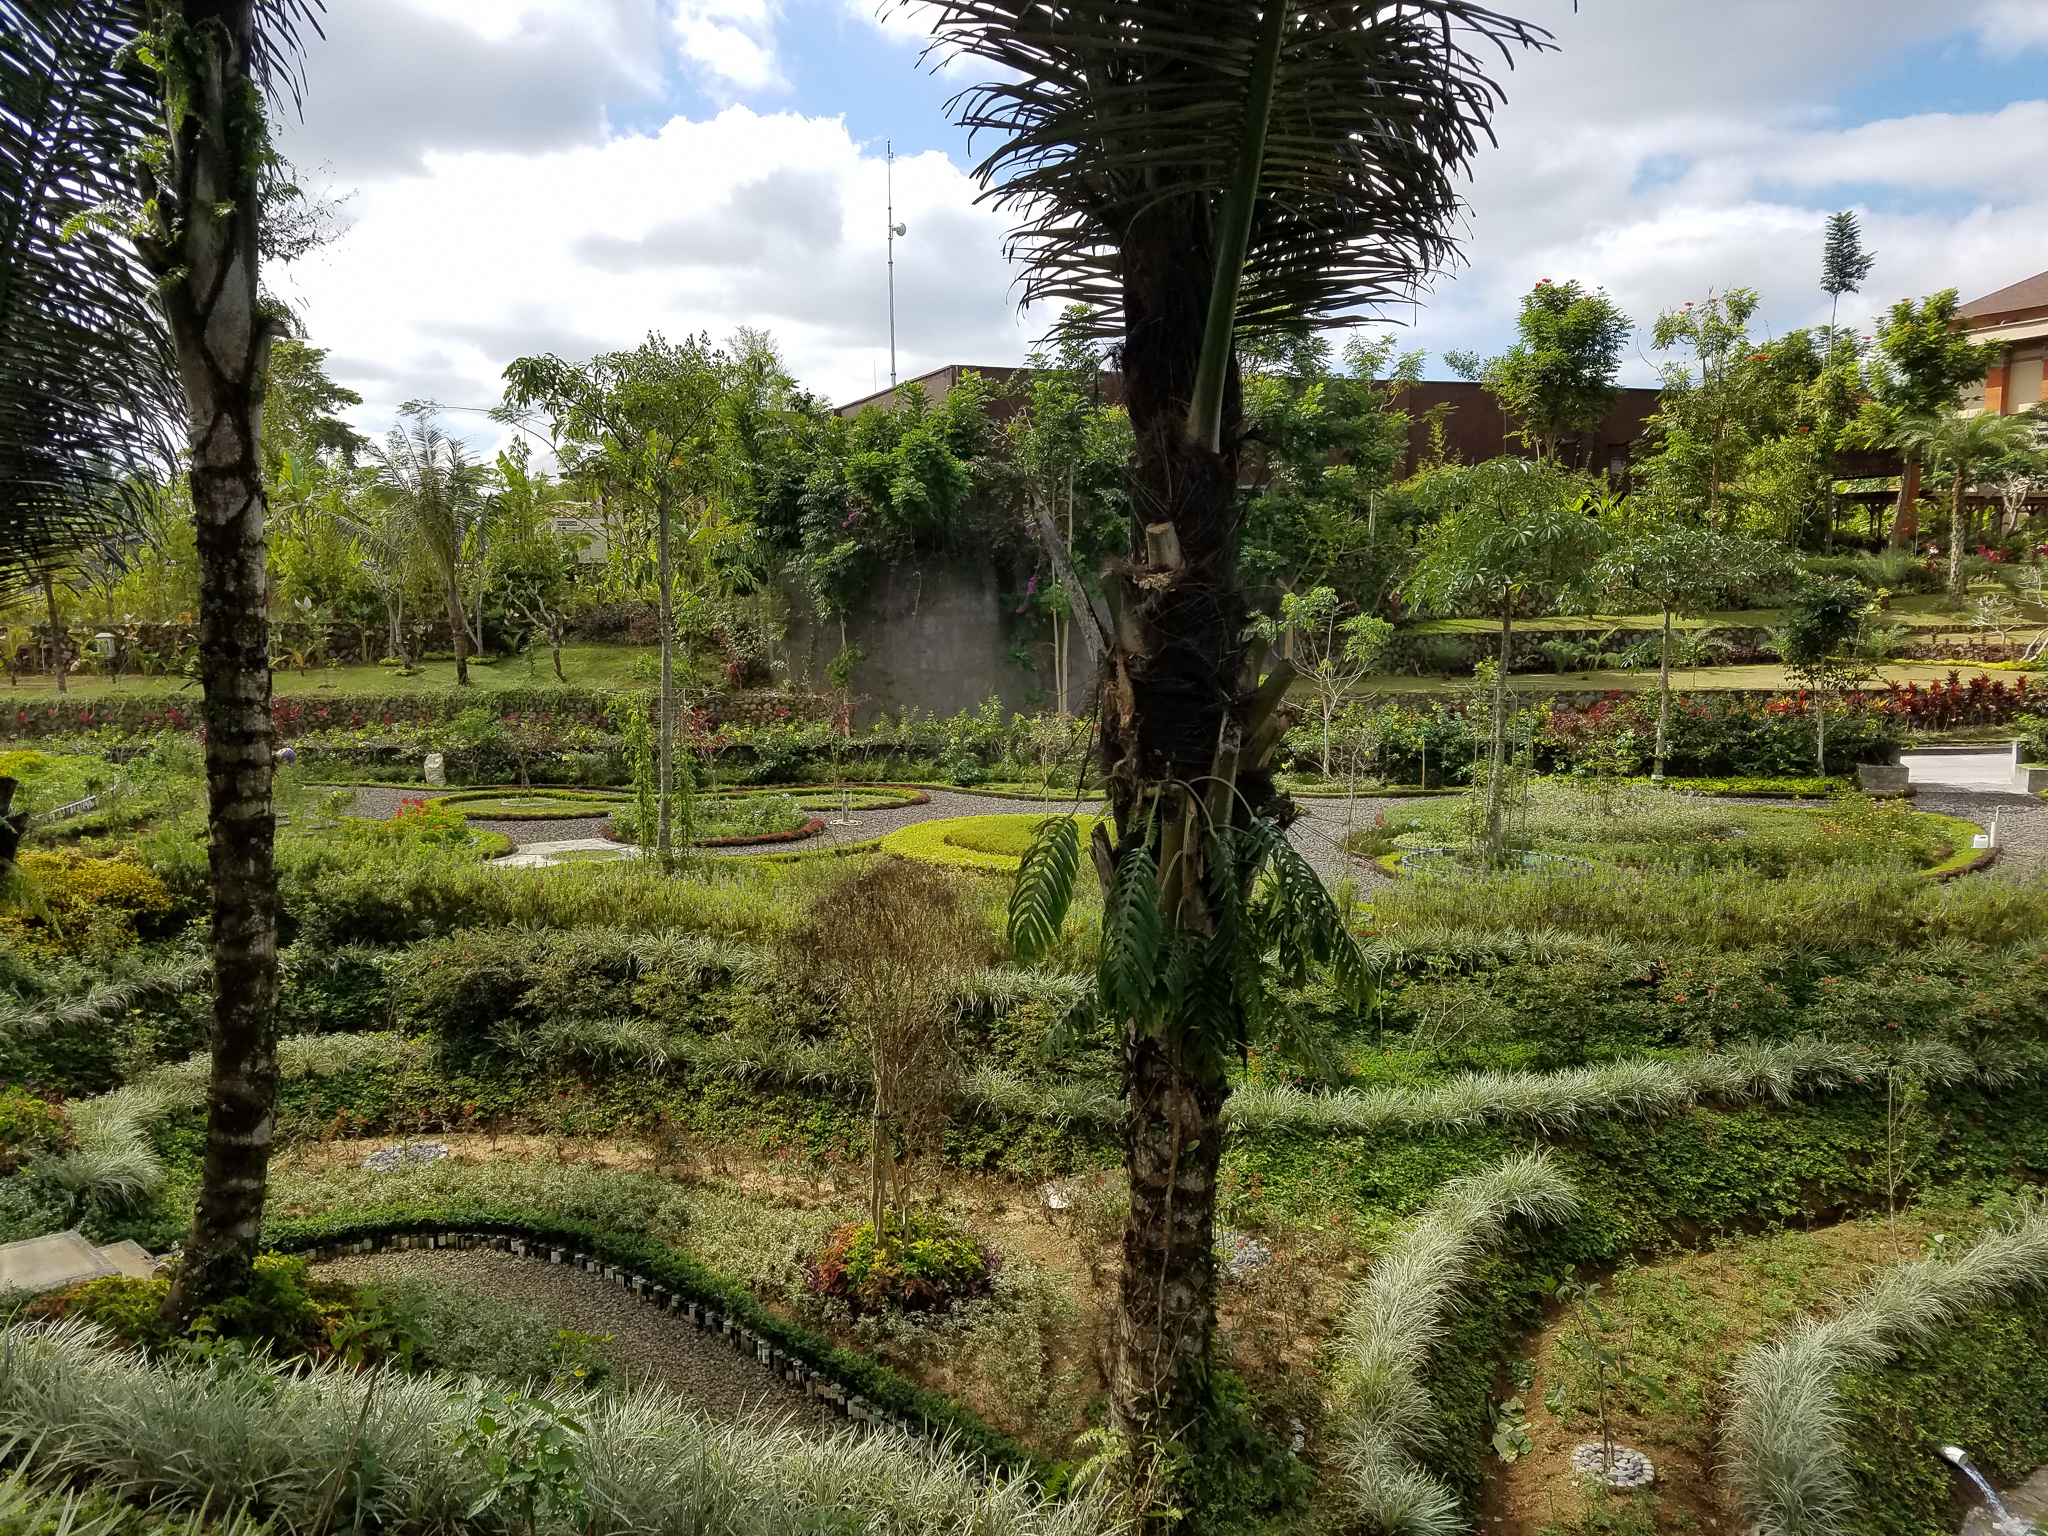 There's no shortage of relaxing things to do at Padma. We took some time to explore the garden that had a variety of plants and flowers. The resort grows a lot of their own food so you will see a variety of spices in the garden.